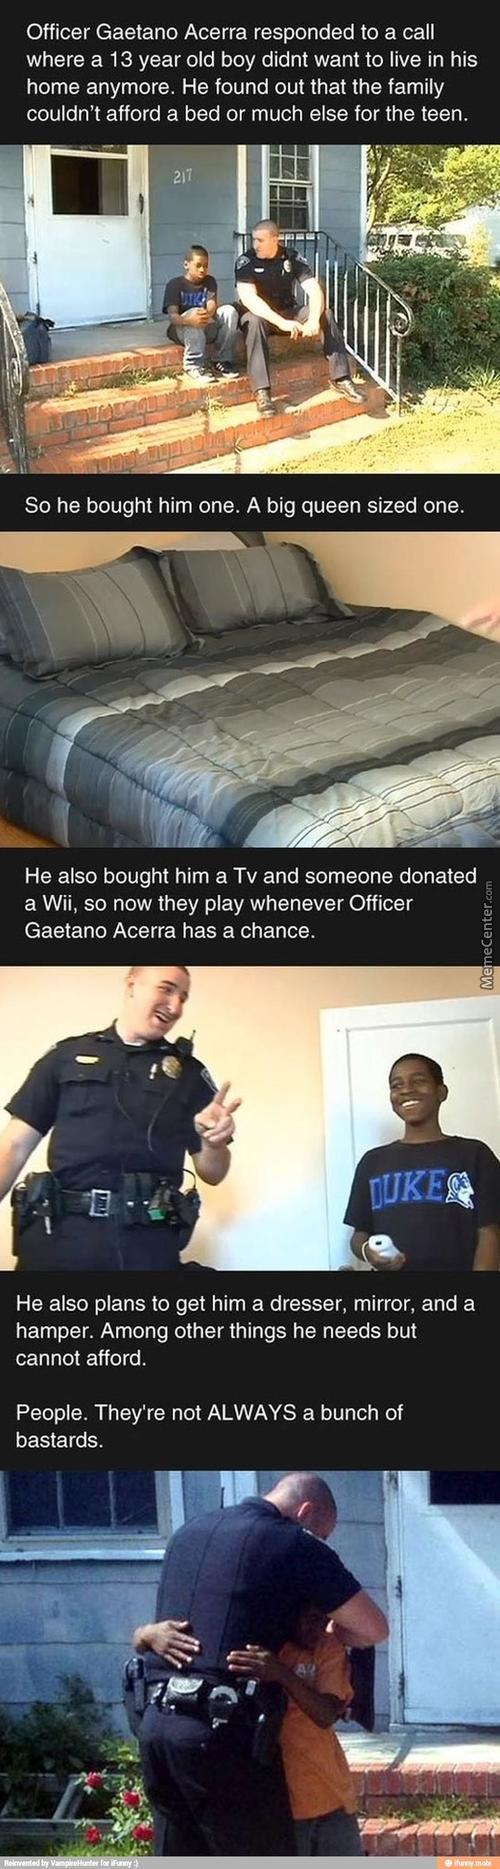 Faith In Humanity: Policeman Buys Bed For Boy Who Cannot Afford One